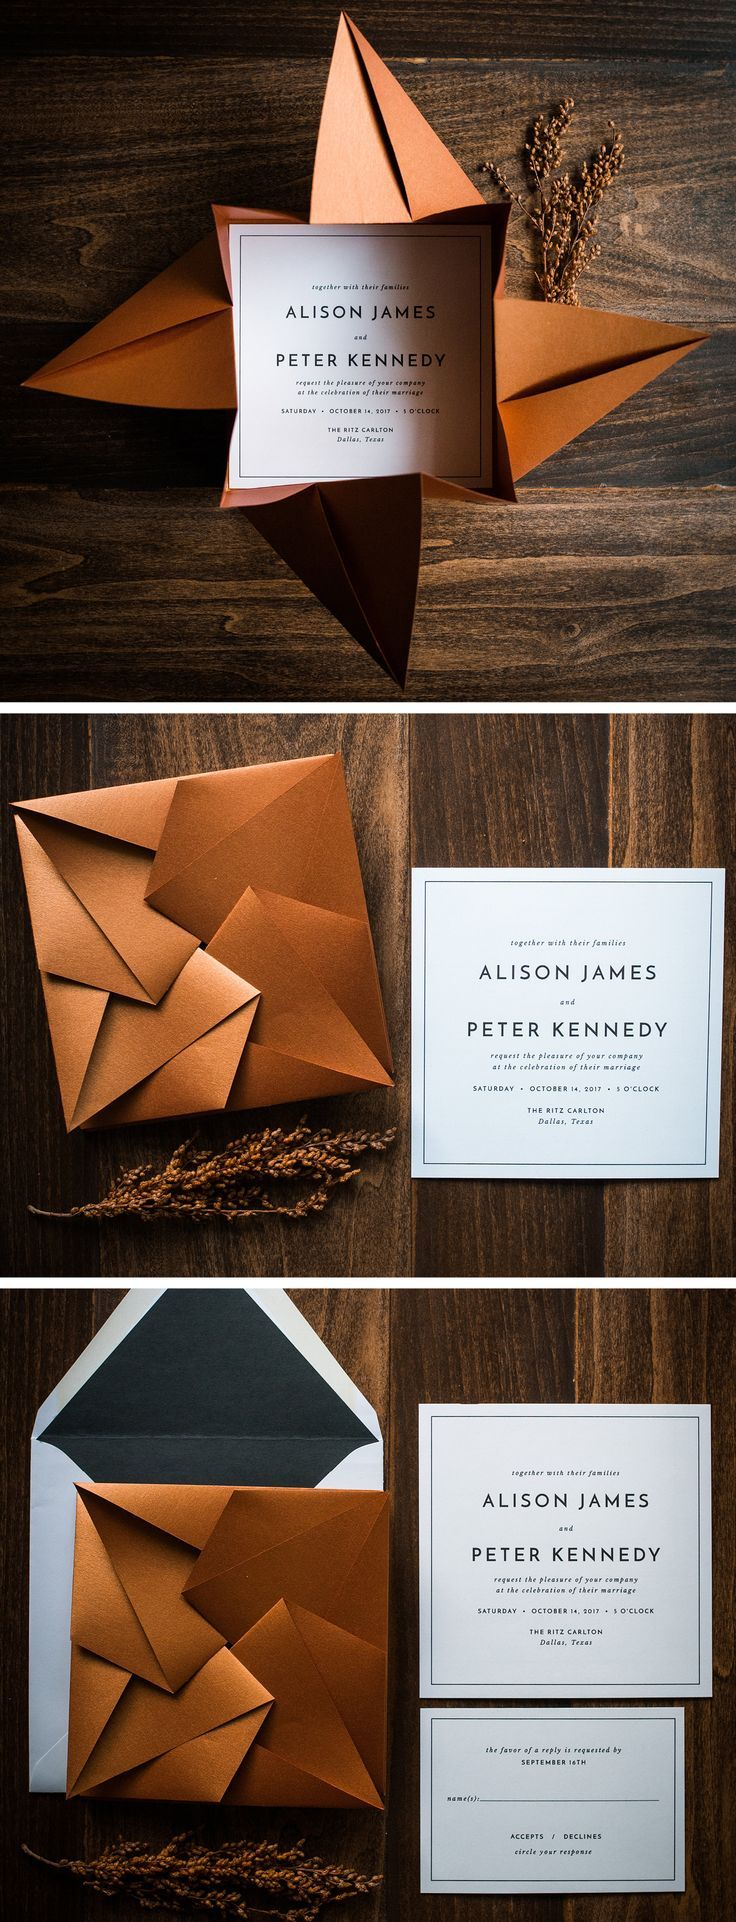 addressing wedding invitations married woman doctor%0A Wk    A surprise inside invite  Unique Origami Wedding Invitation by Penn  u      Paperie  shown in shimmer copper and black color palette